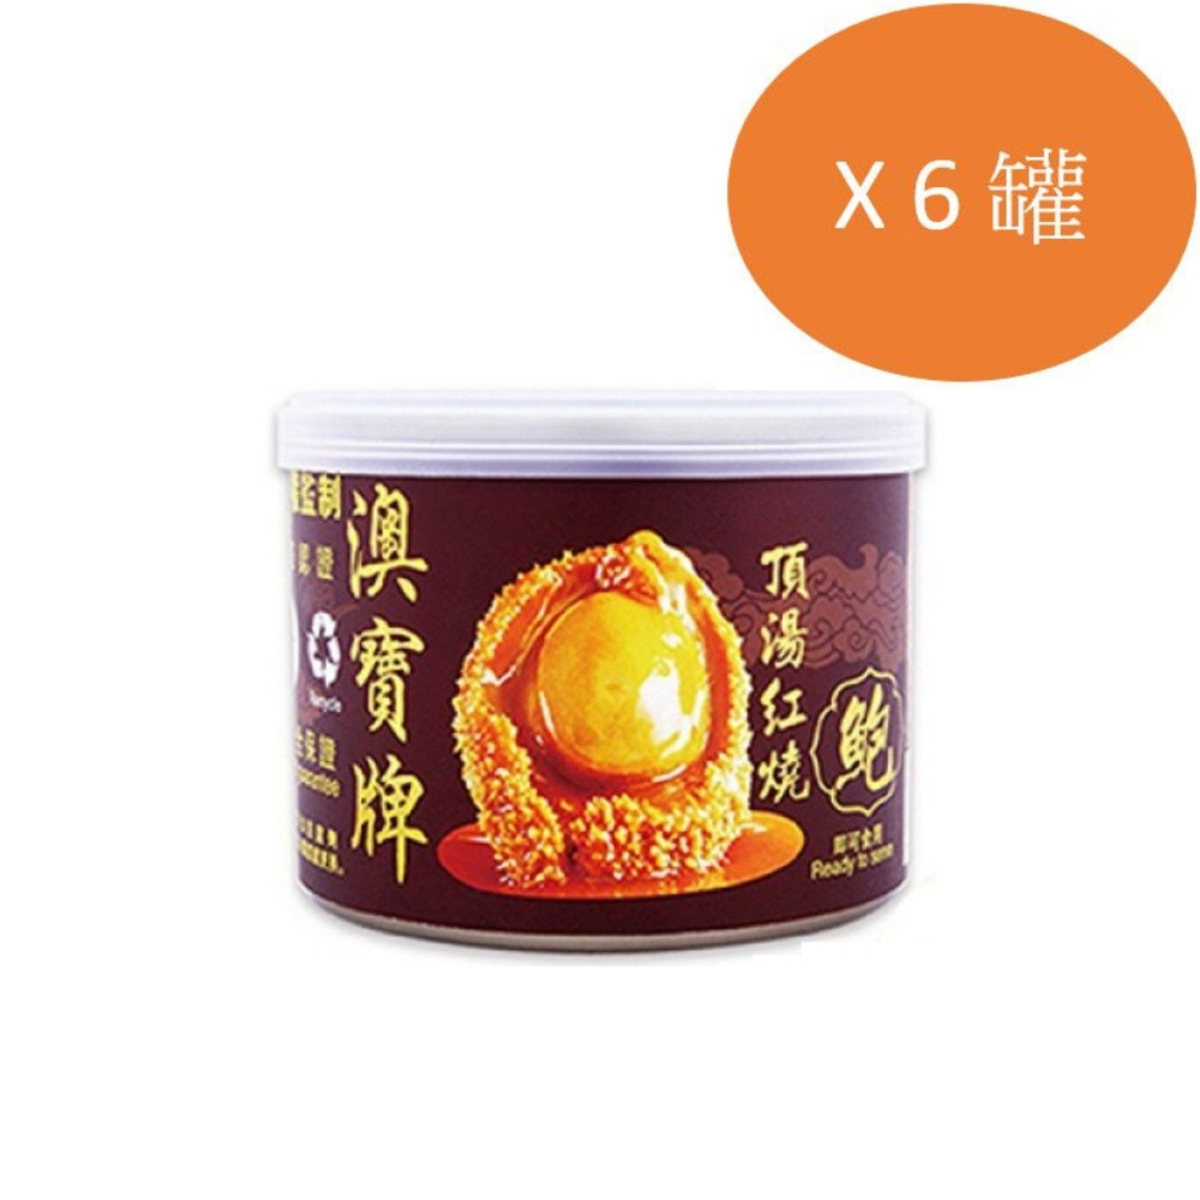 Canned Abalone in Brown Sauce (40g 4pcs) x 6